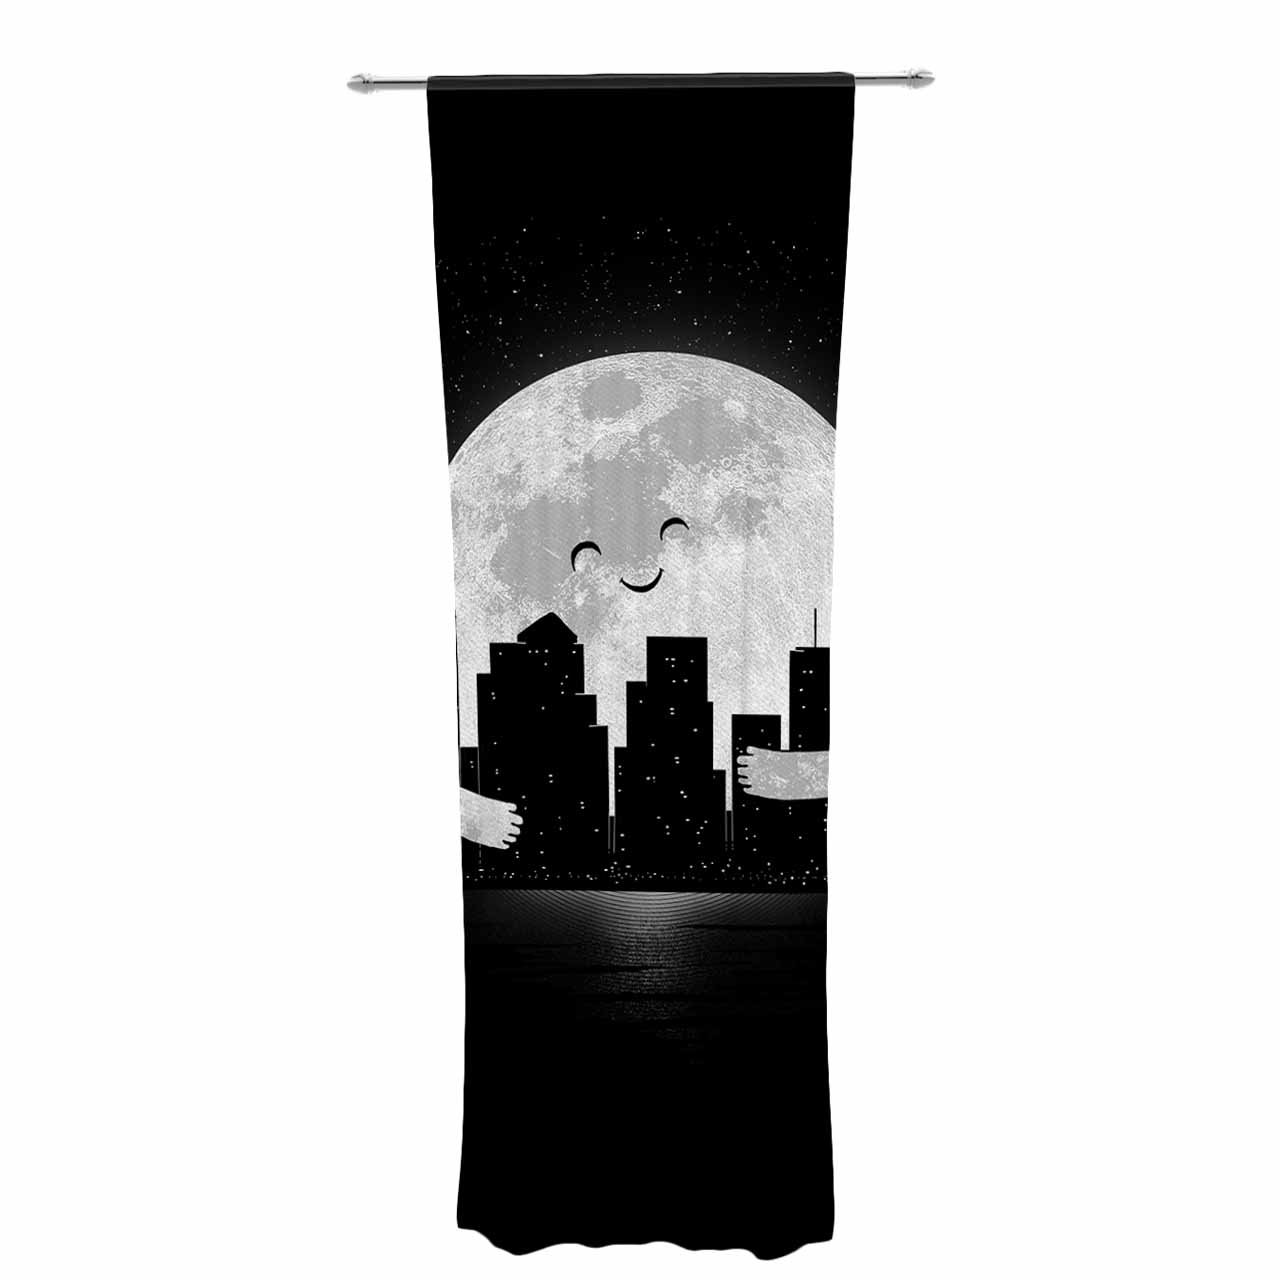 Kess Inhouse Digital Carbine Goodnight Black White Decorative Set 30 X 84 Sheer Curtains Panels Home Décor